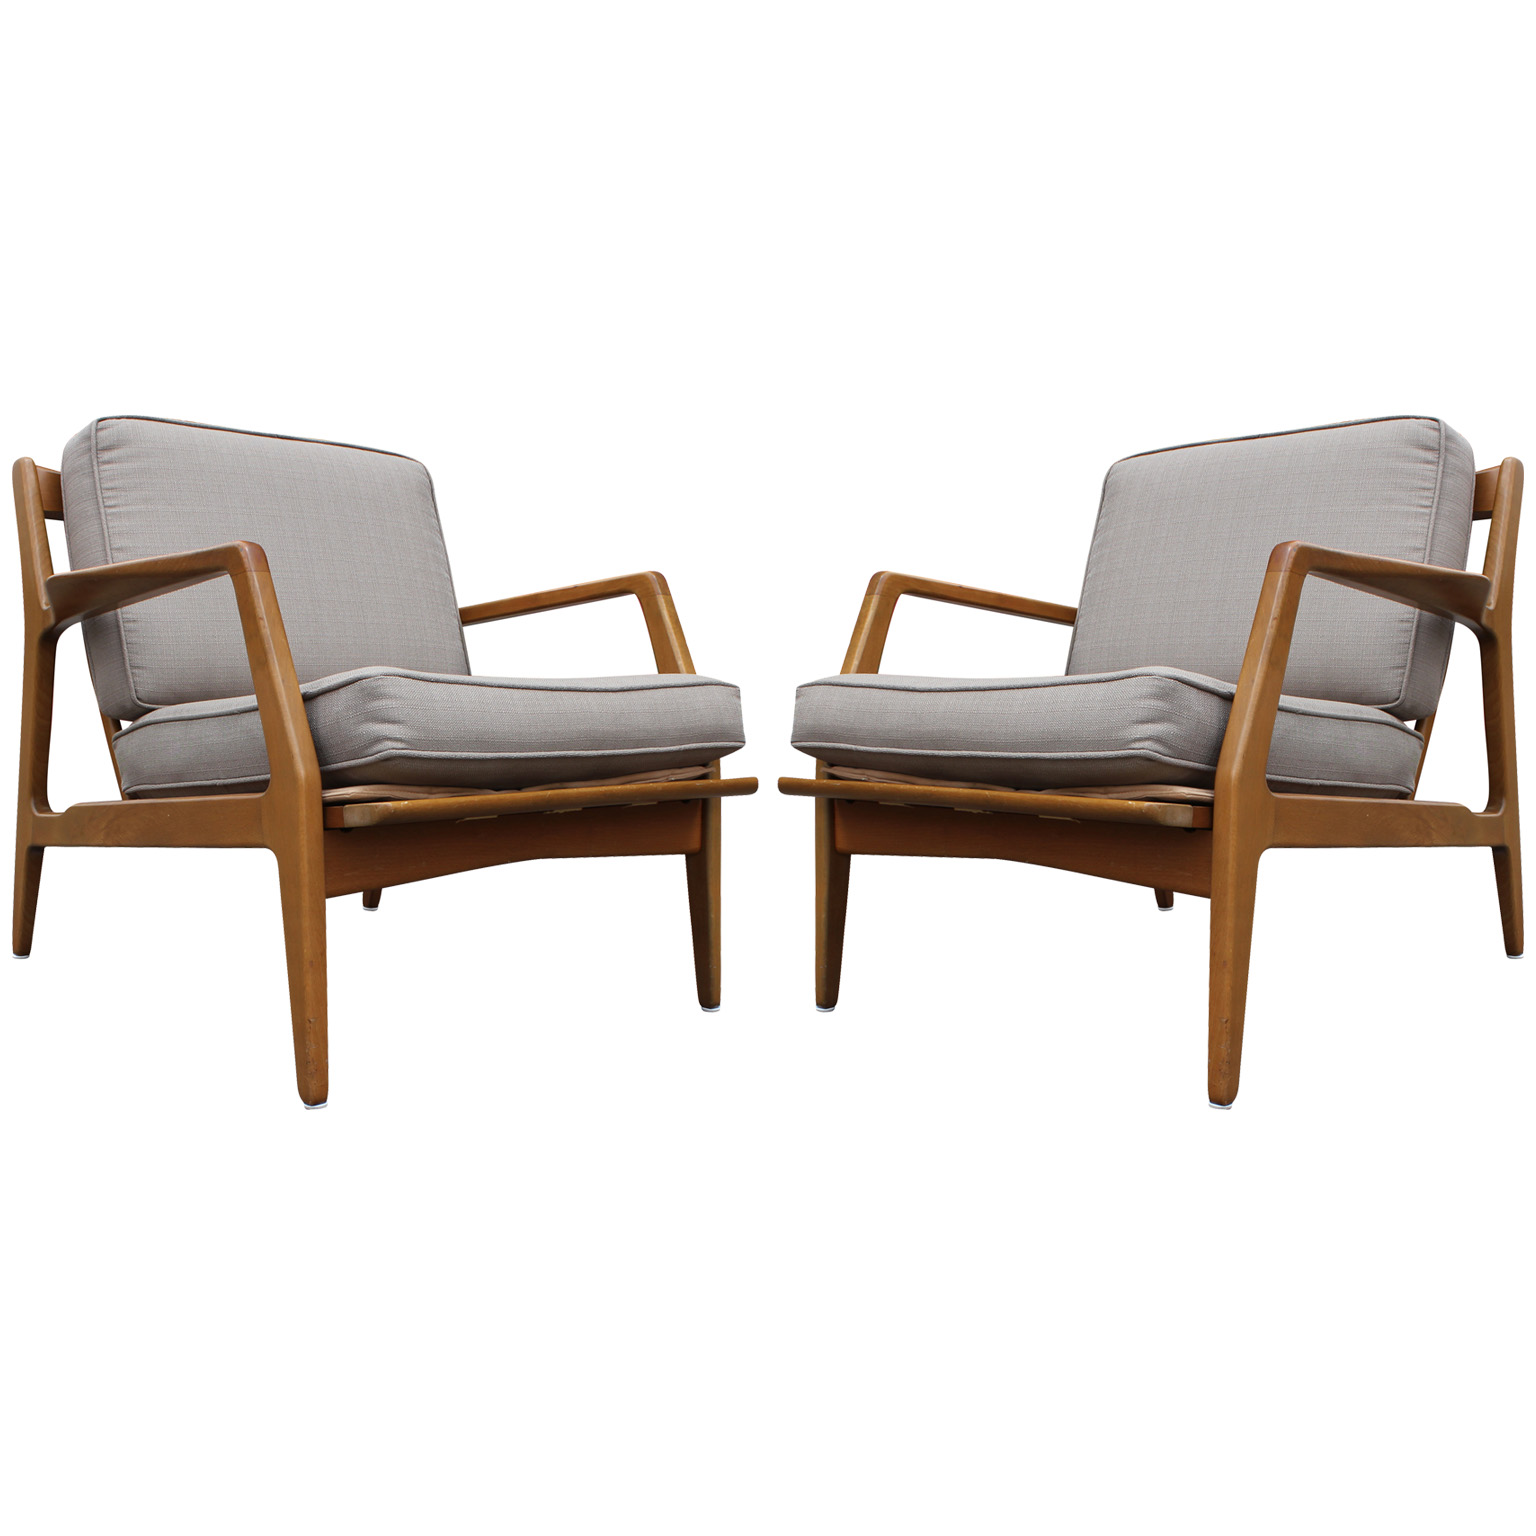 Elegant Pair Of Lounge Chairs By Ib Kofod Larsen For Selig